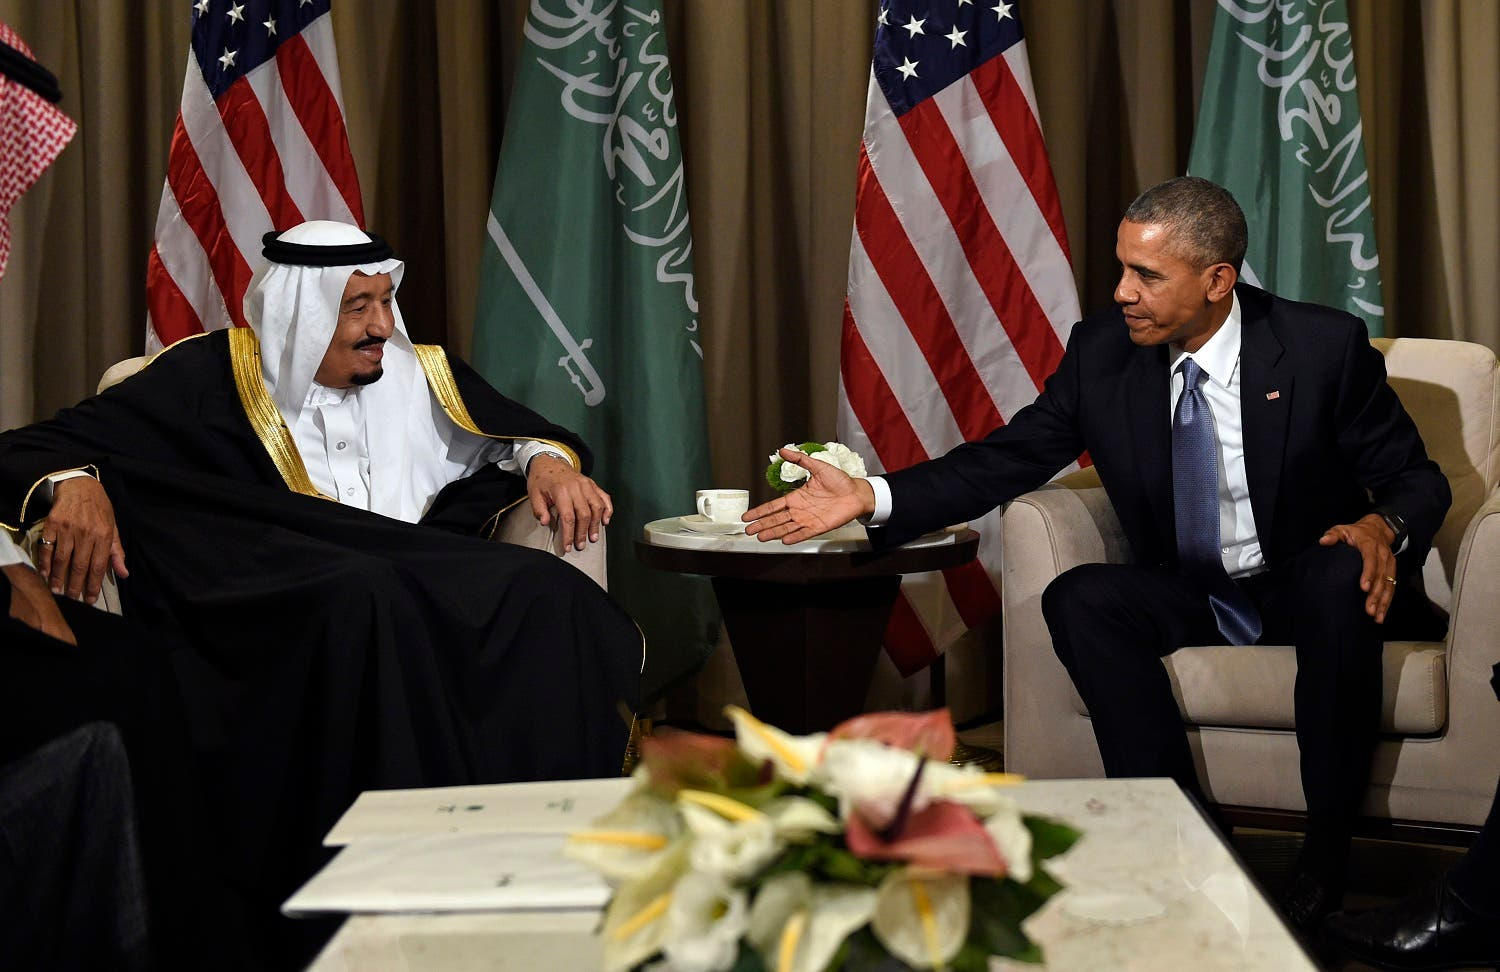 U.S President Barack Obama reaches out to shake hands with King Salman of Saudi Arabia at the G-20 Summit in Antalya, Turkey, Sunday, Nov. 15, 2015. (AP)